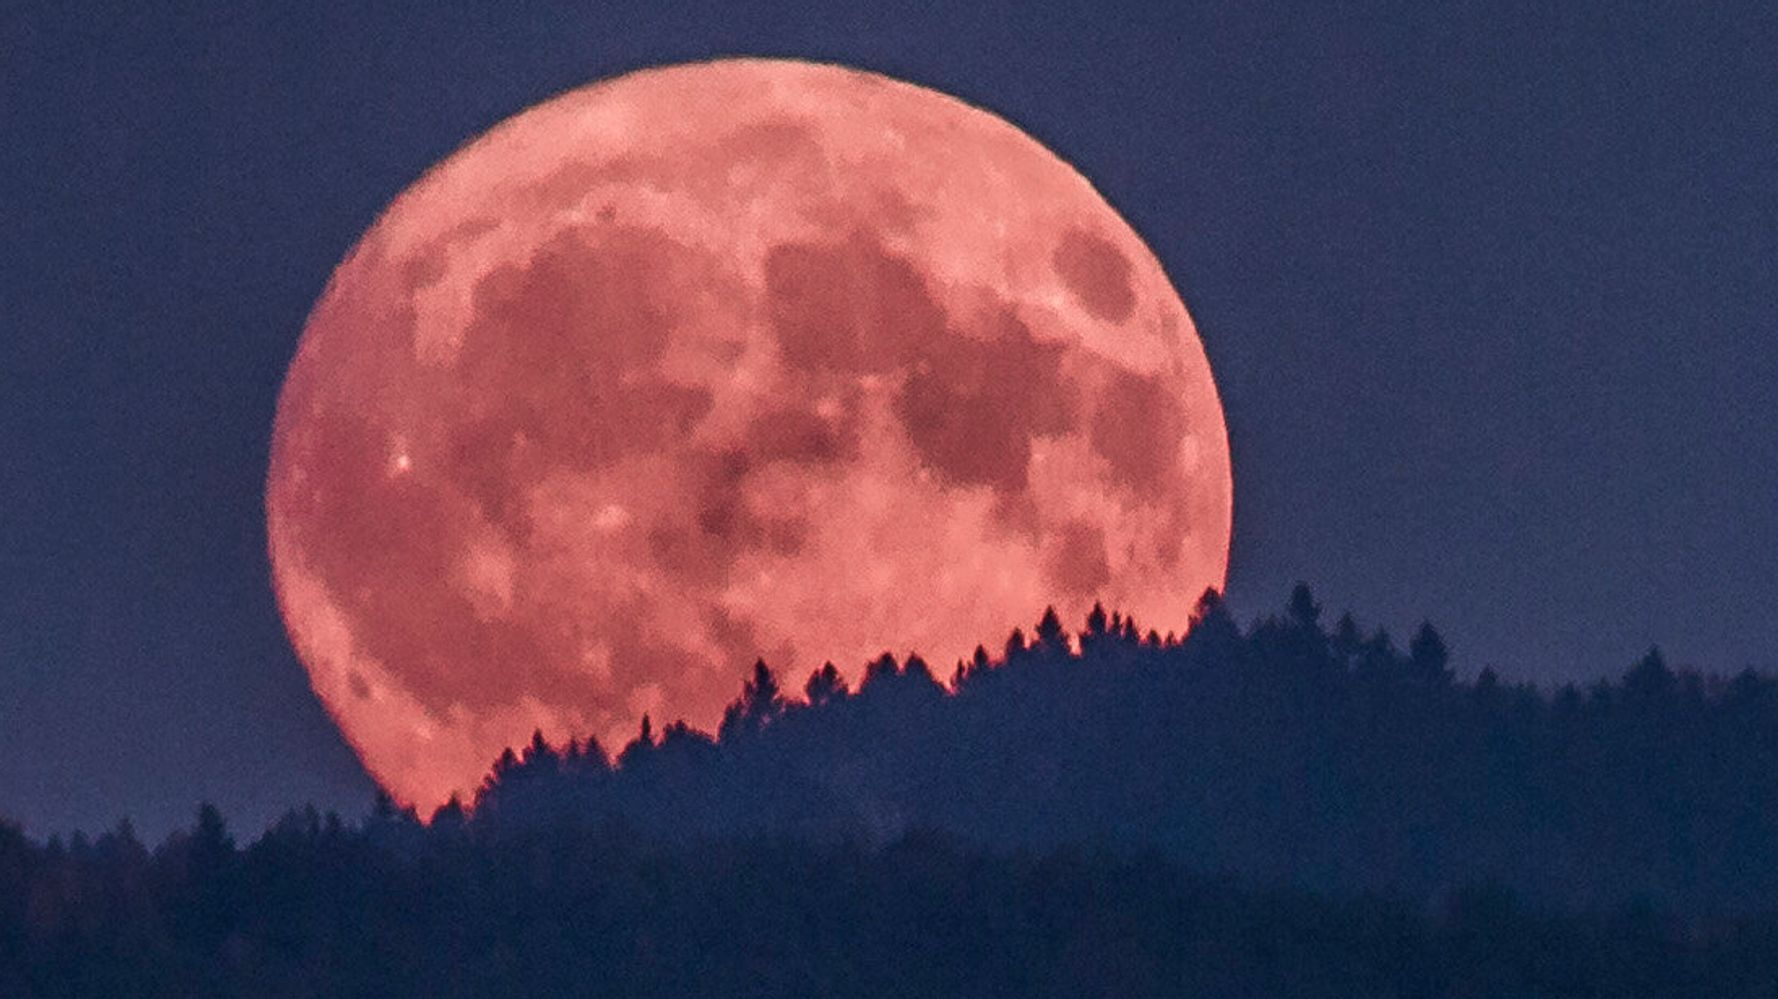 Earth Just Captured A Spiffy New Moon, But Don't Get Too Attached To It - The Union Journal